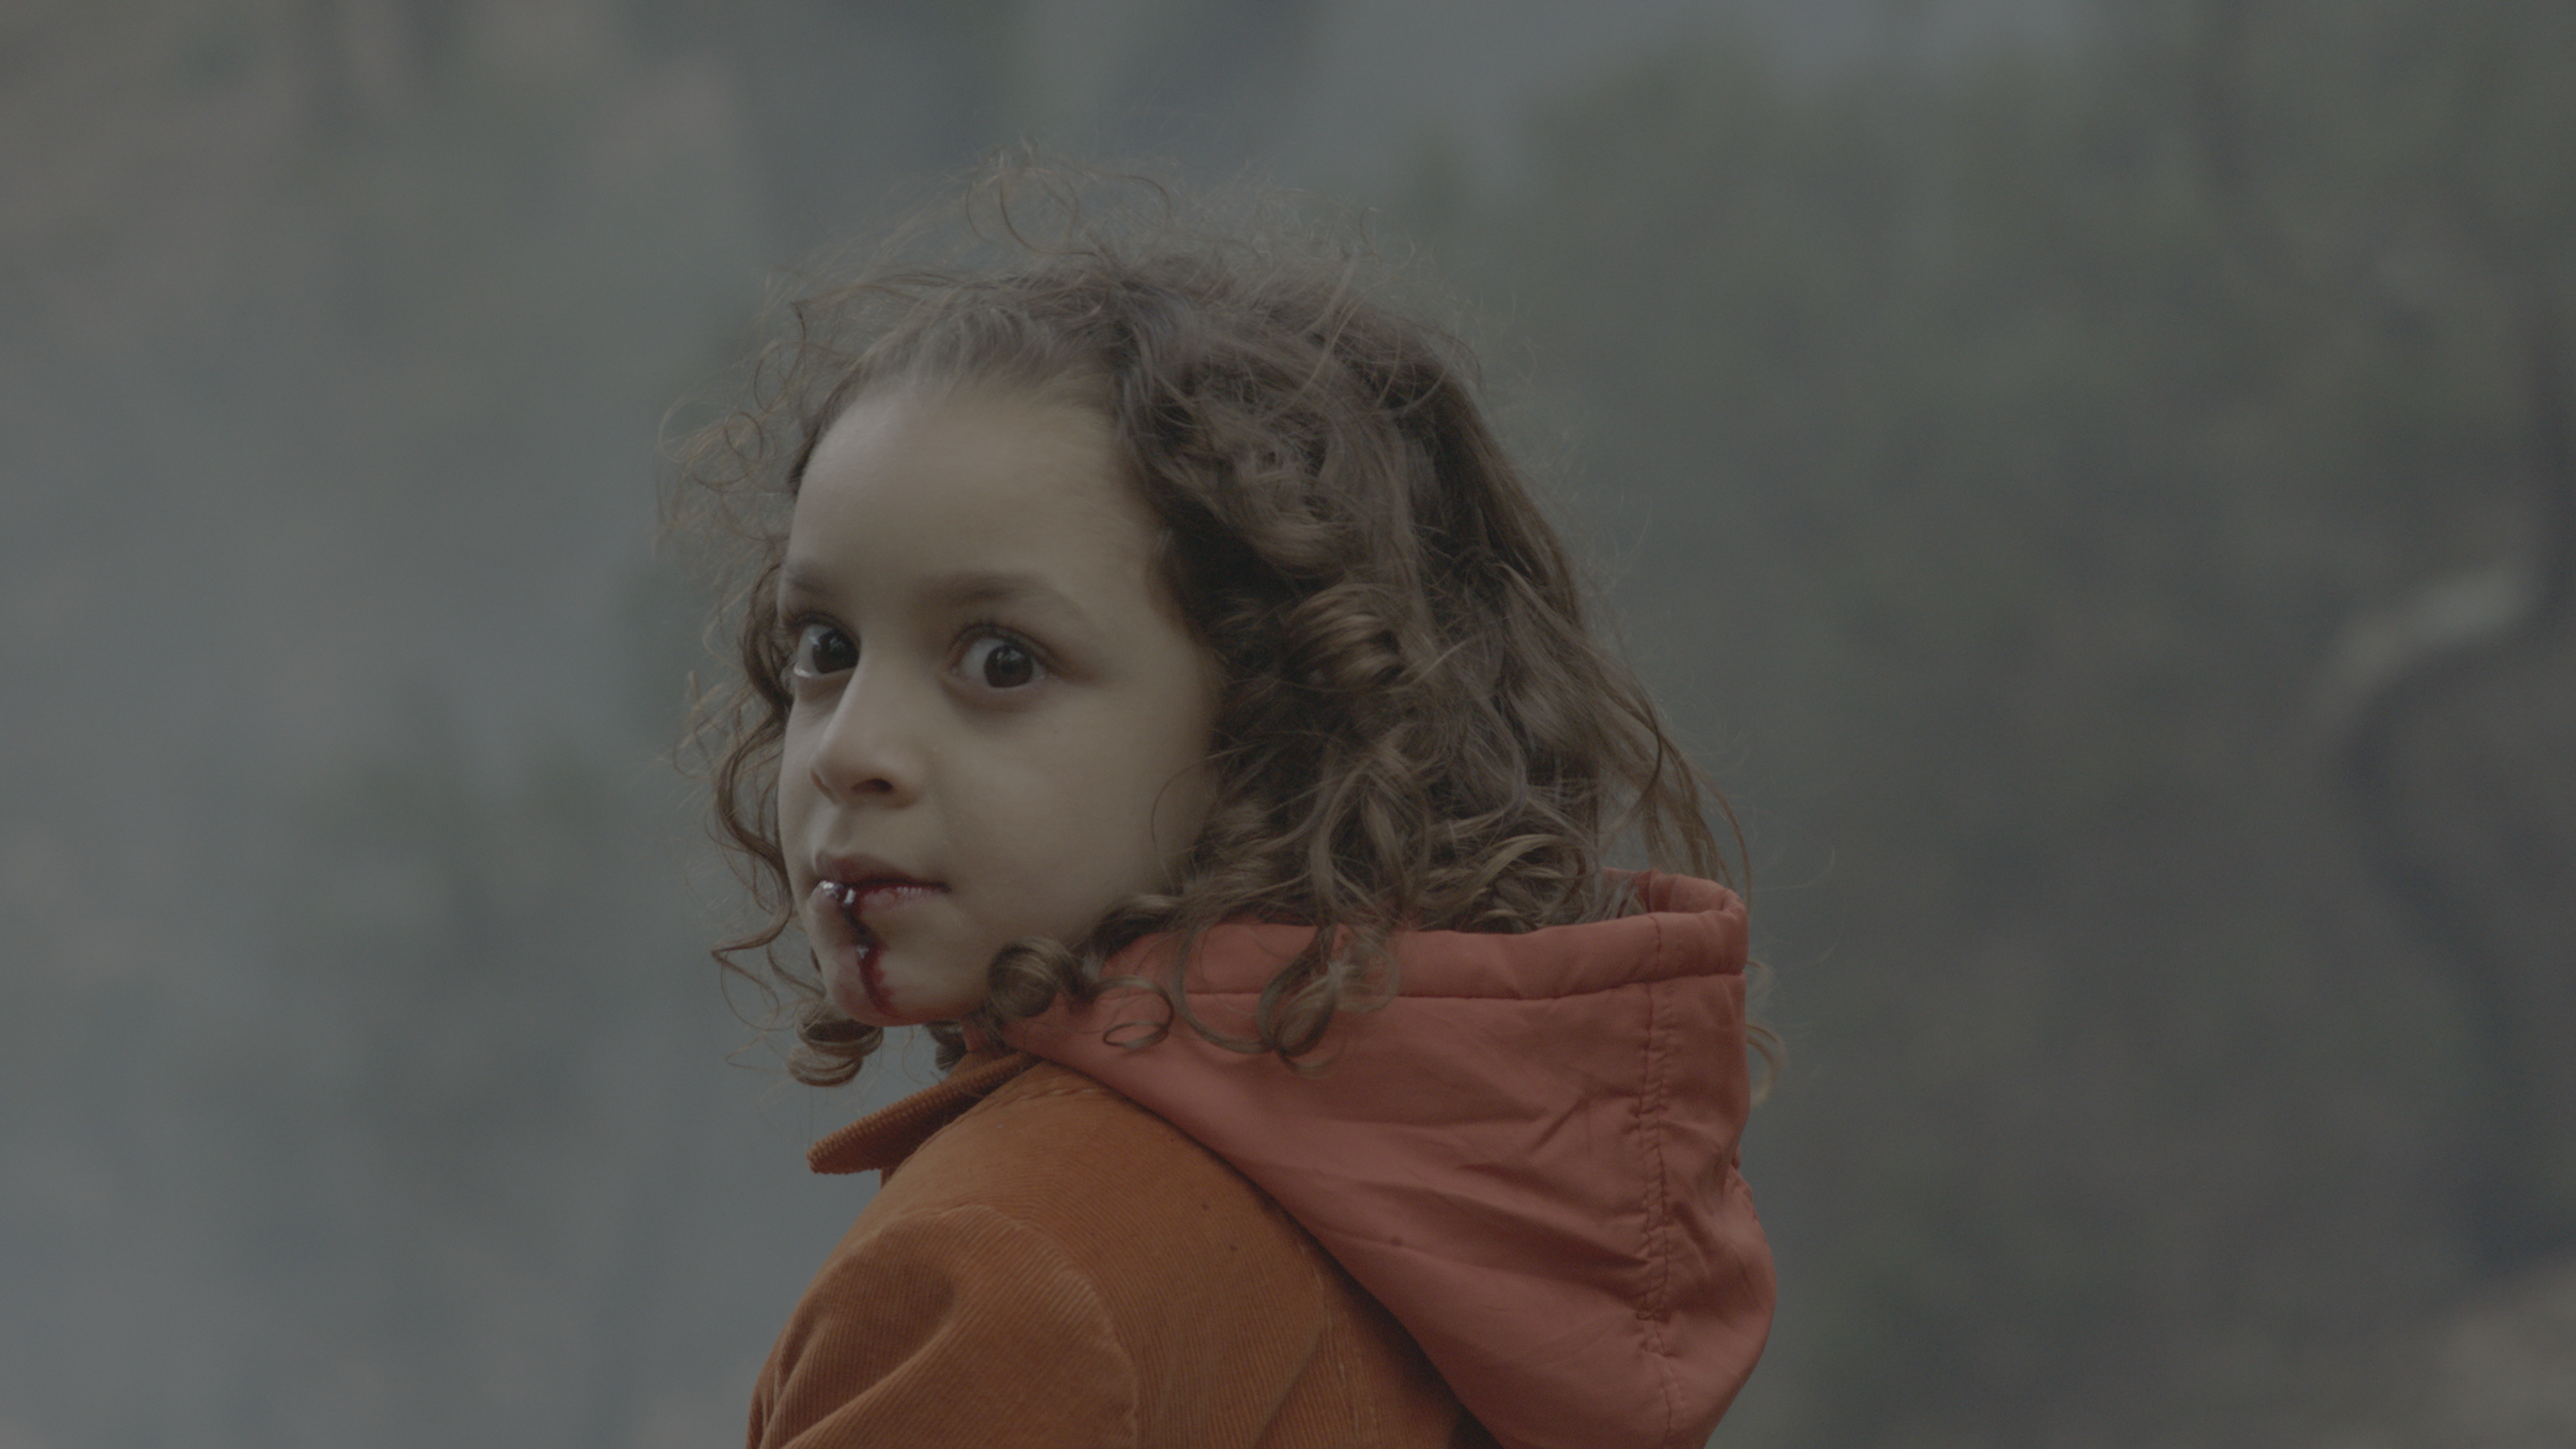 Father Son Holy Gore - Dachra - Bloody Child